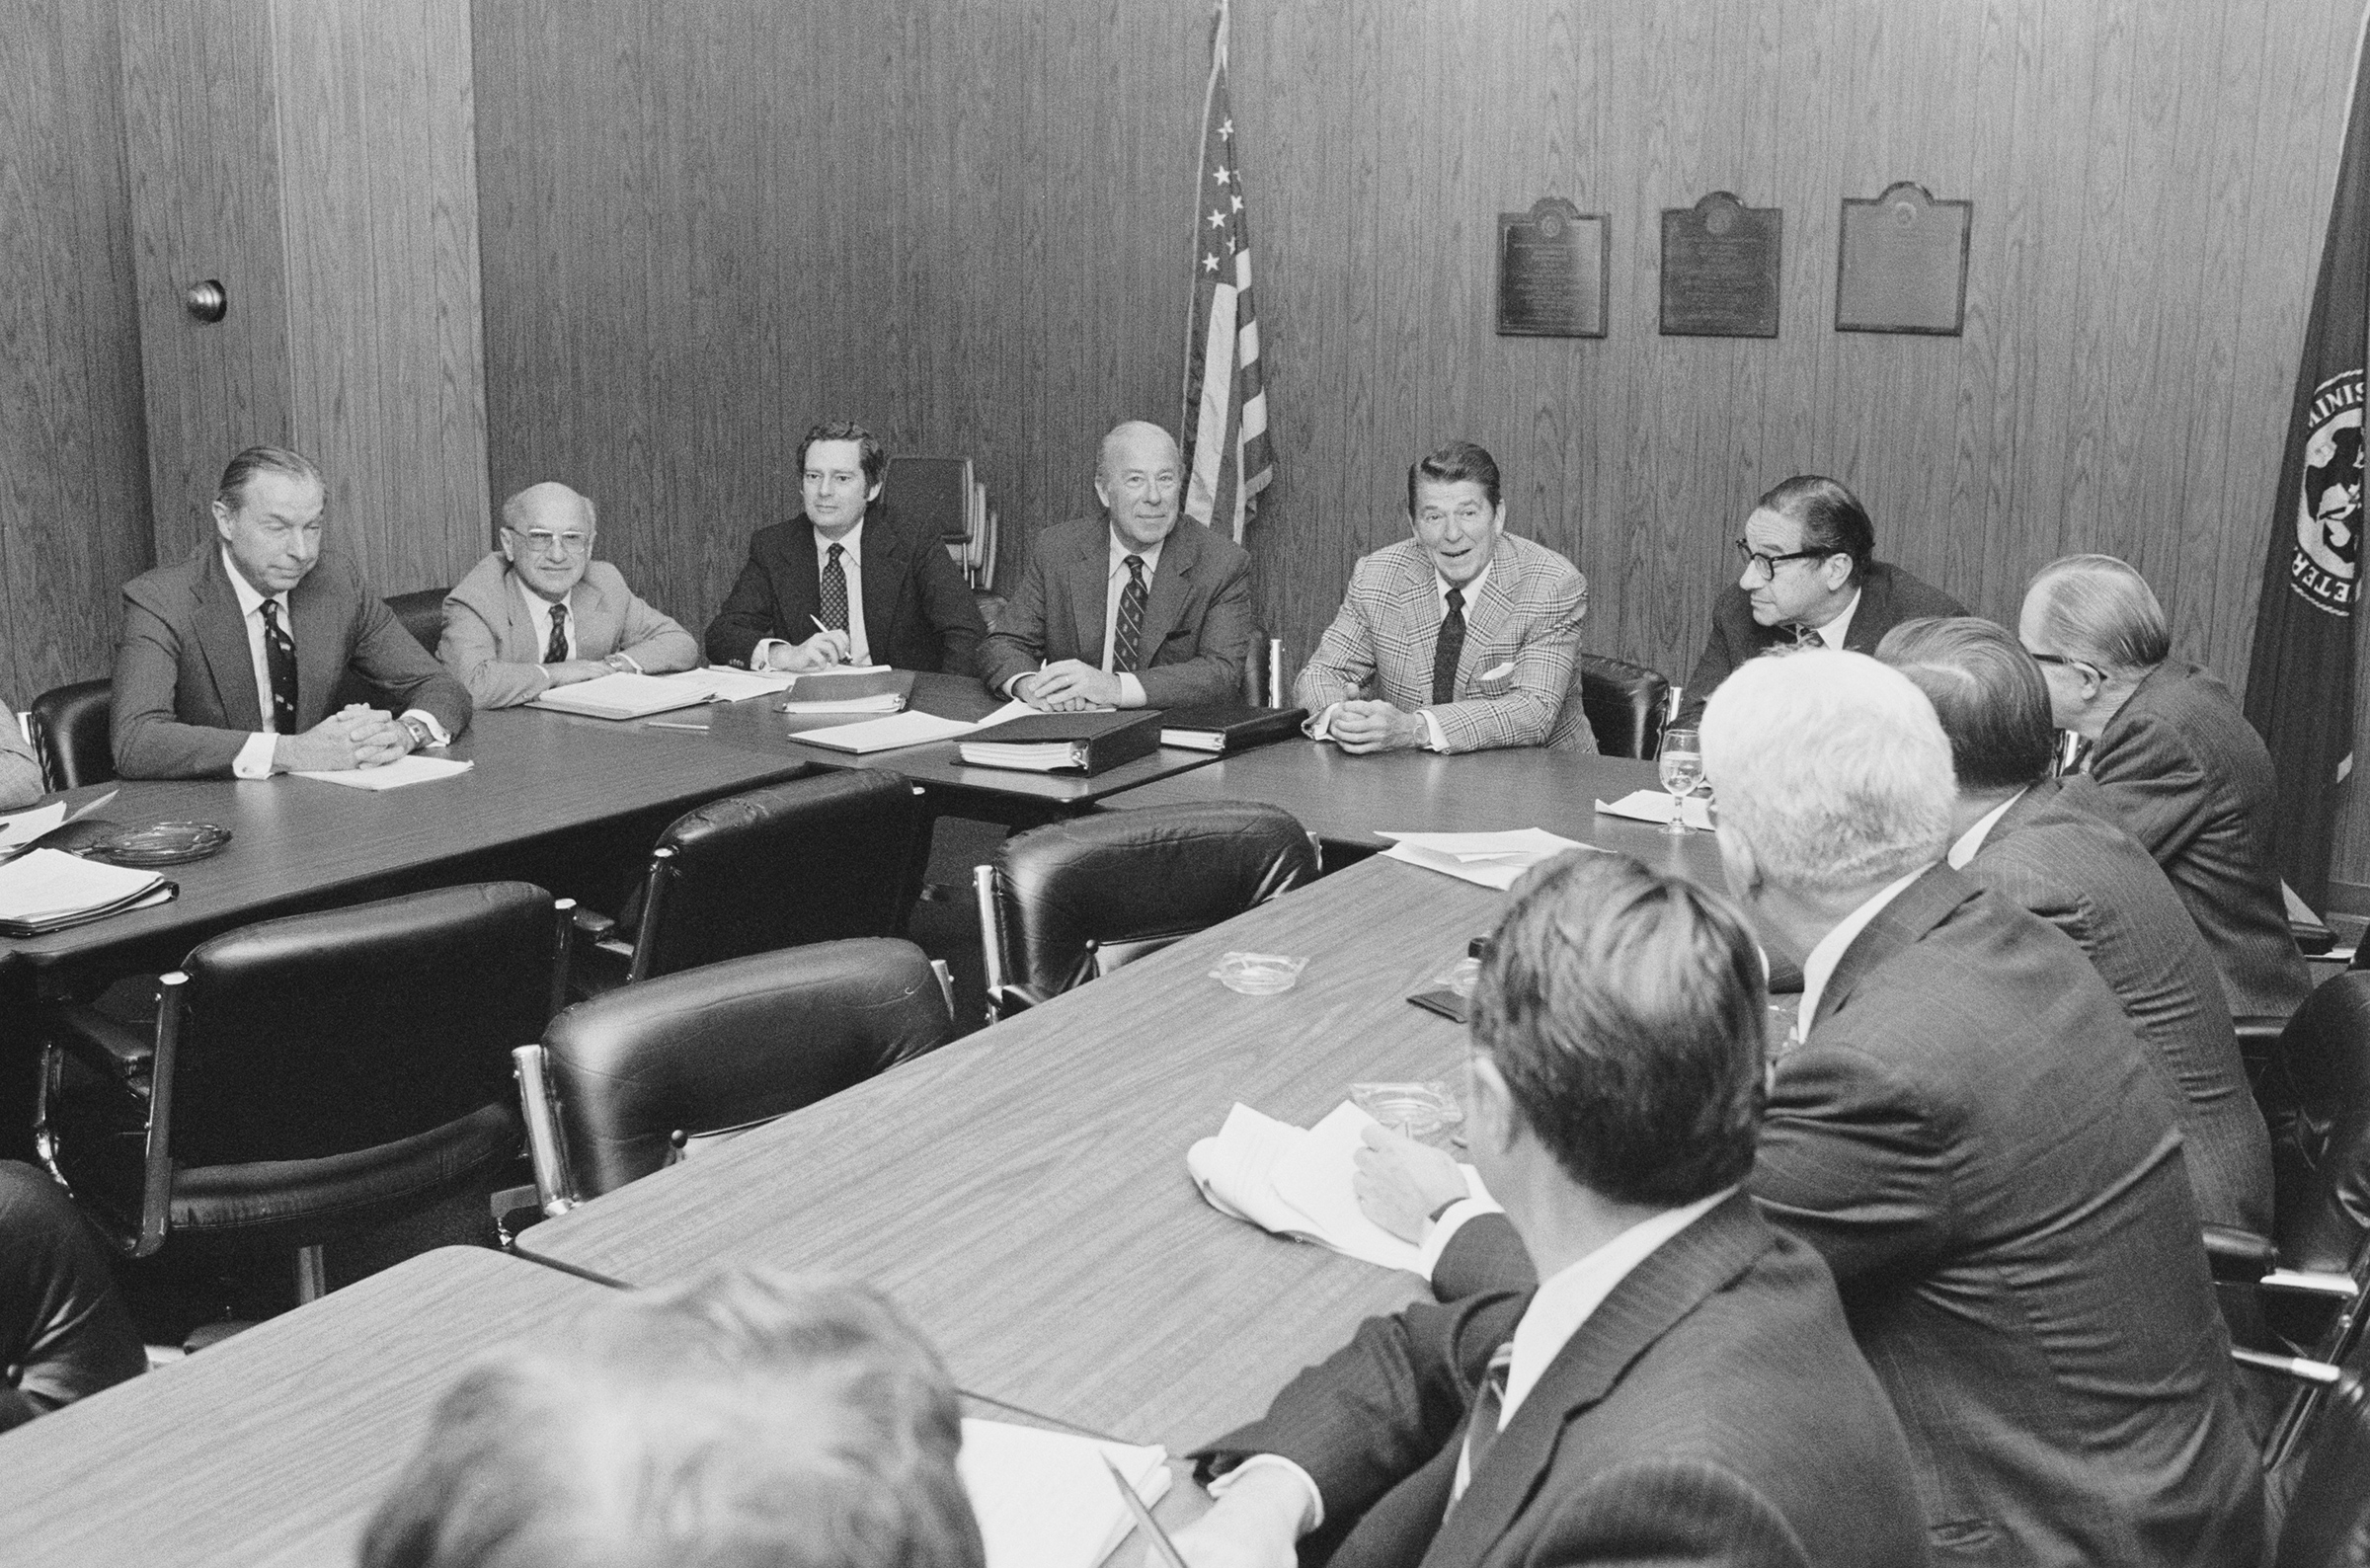 Then President elect Ronald Reagan meets with his top economic advisers at the Los Angeles Federal Building on Nov. 16, 1980, including (from left): Walter Wriston, Milton Friedman, Daryl Trent, George Shultz, Ronald Reagan, and Paul McCracken.